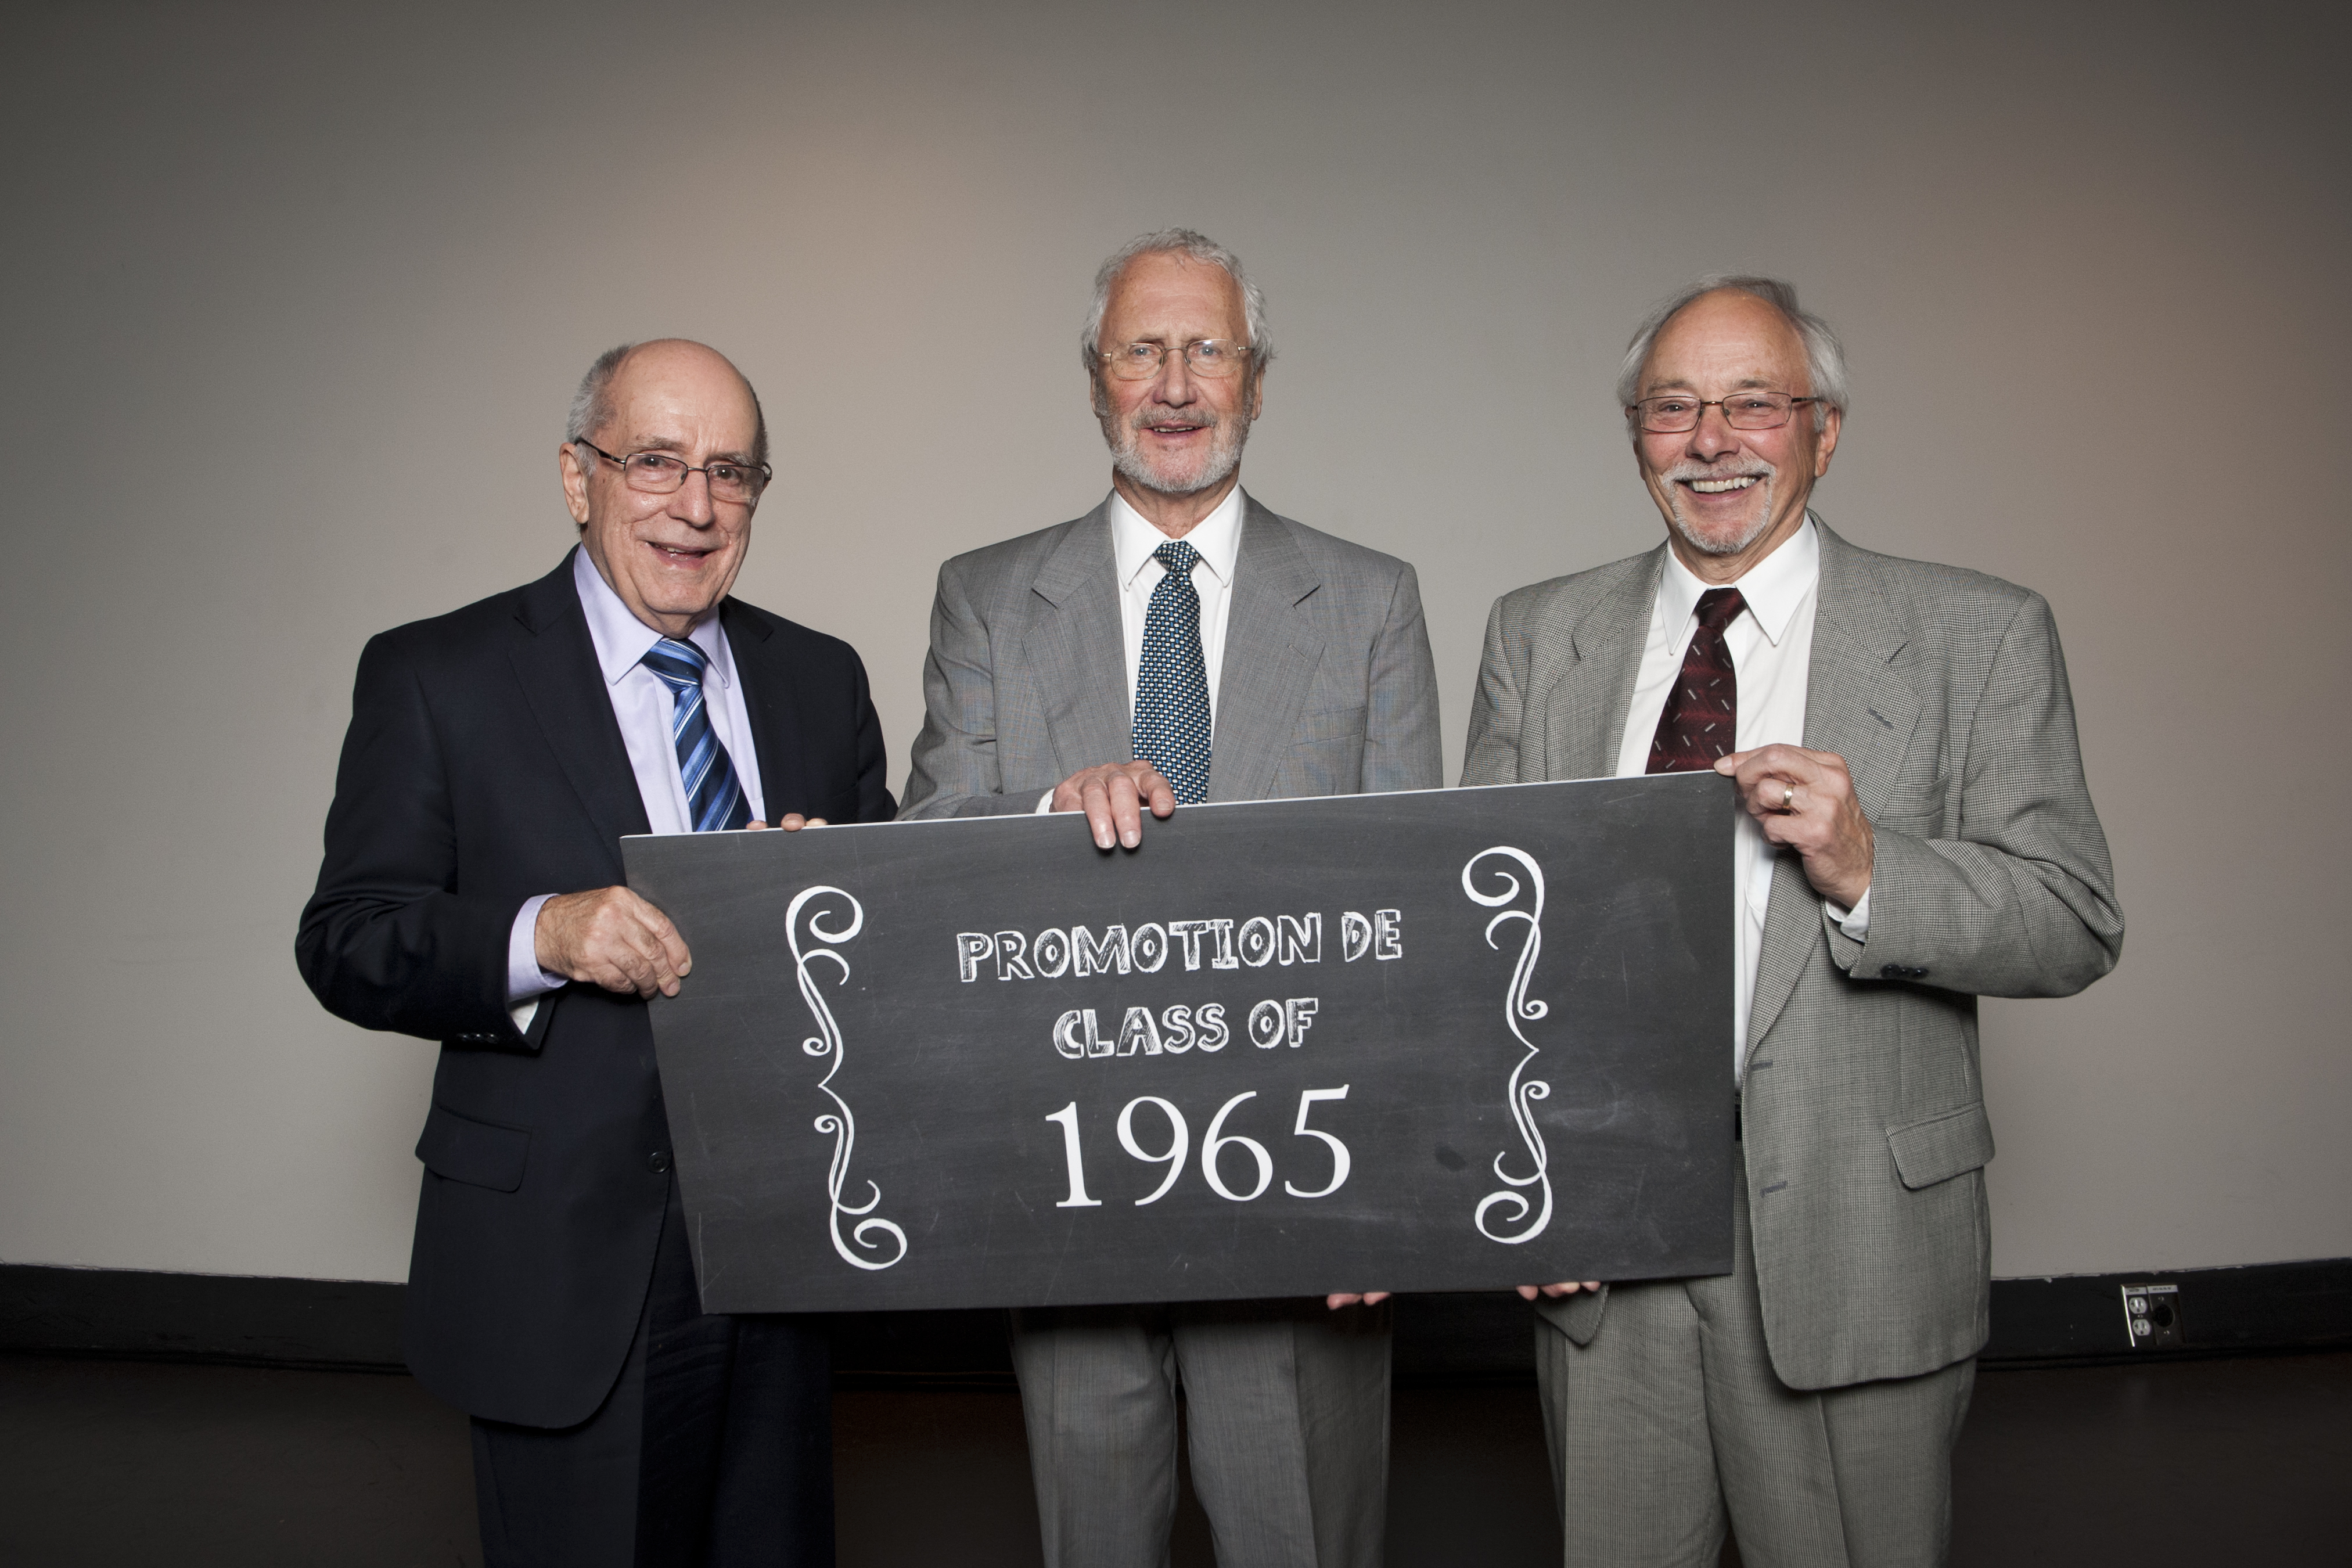 Gala of Excellence, Class of 1965